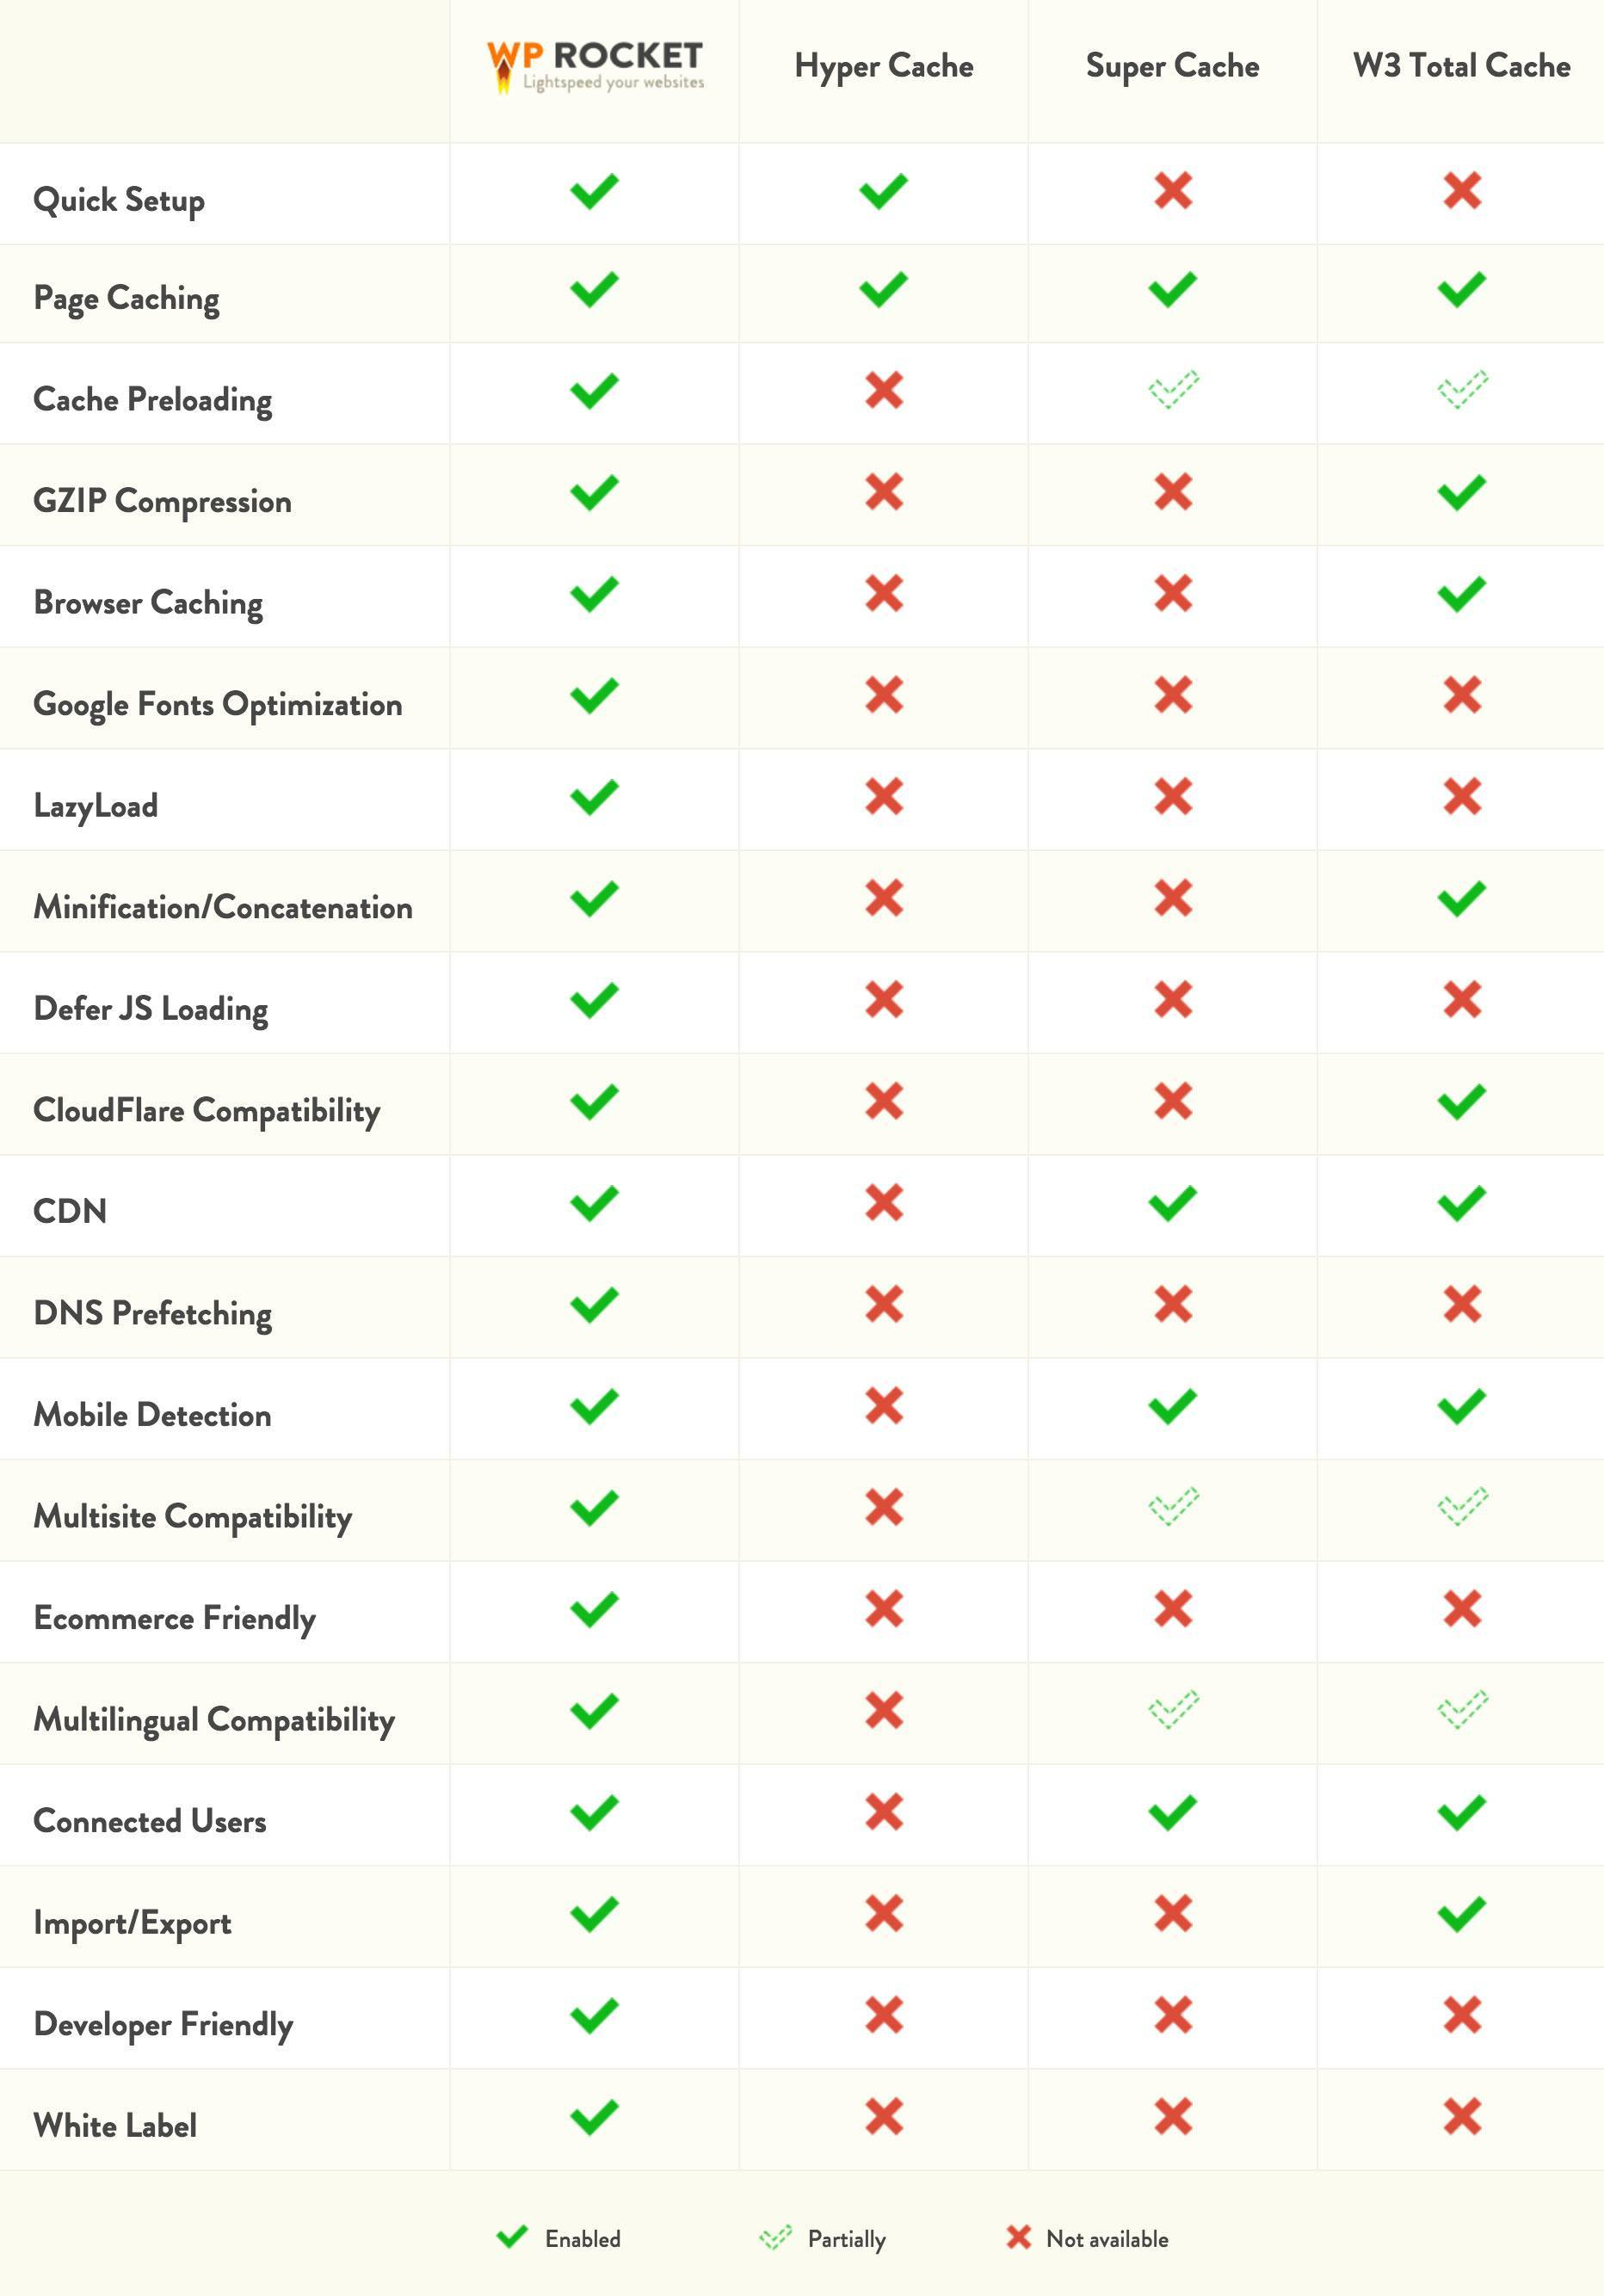 wp-rocket-website-comparison